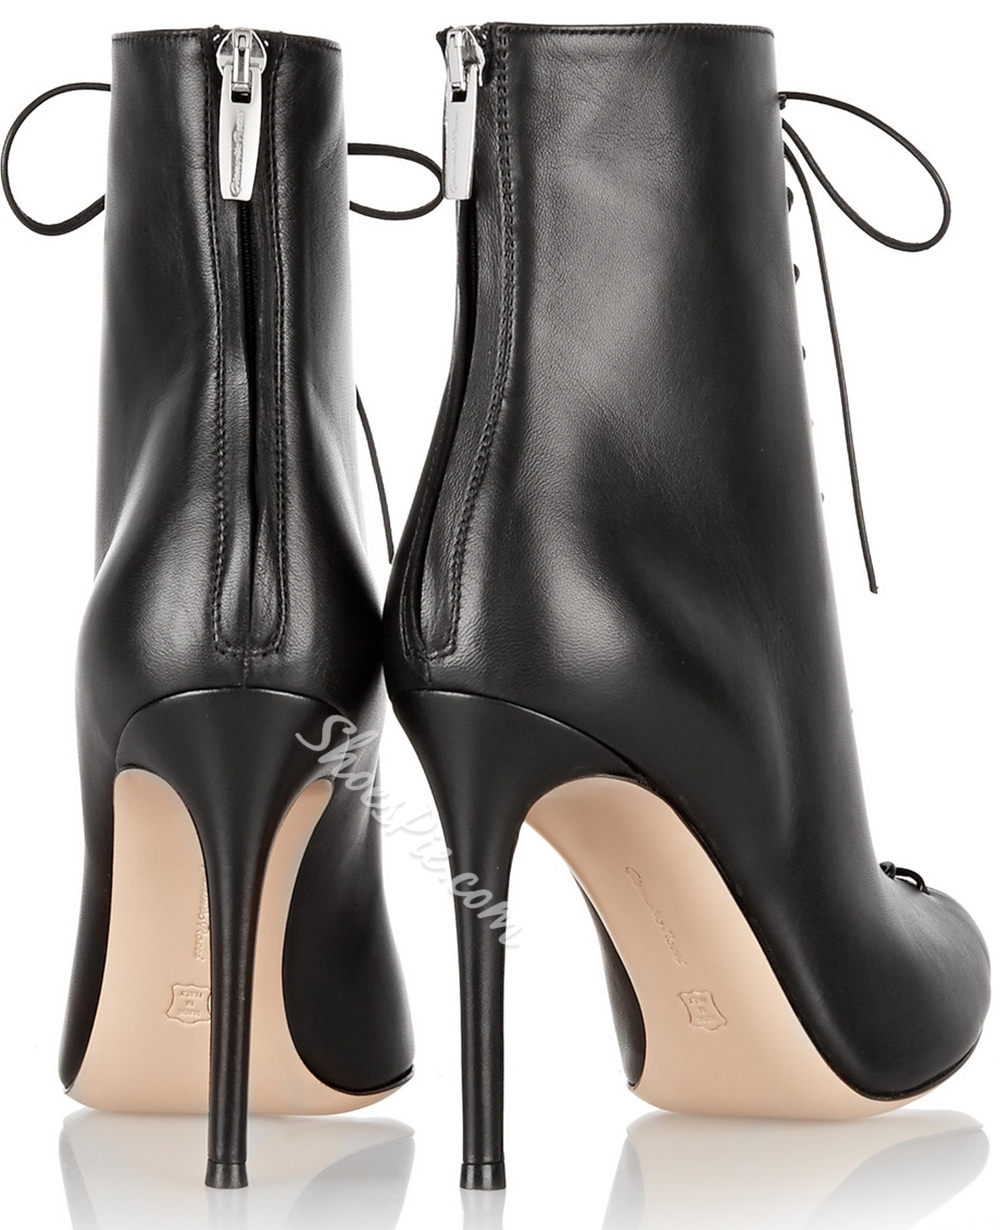 Shoespie Black Lace up Stiletto Heels Ankle Boots